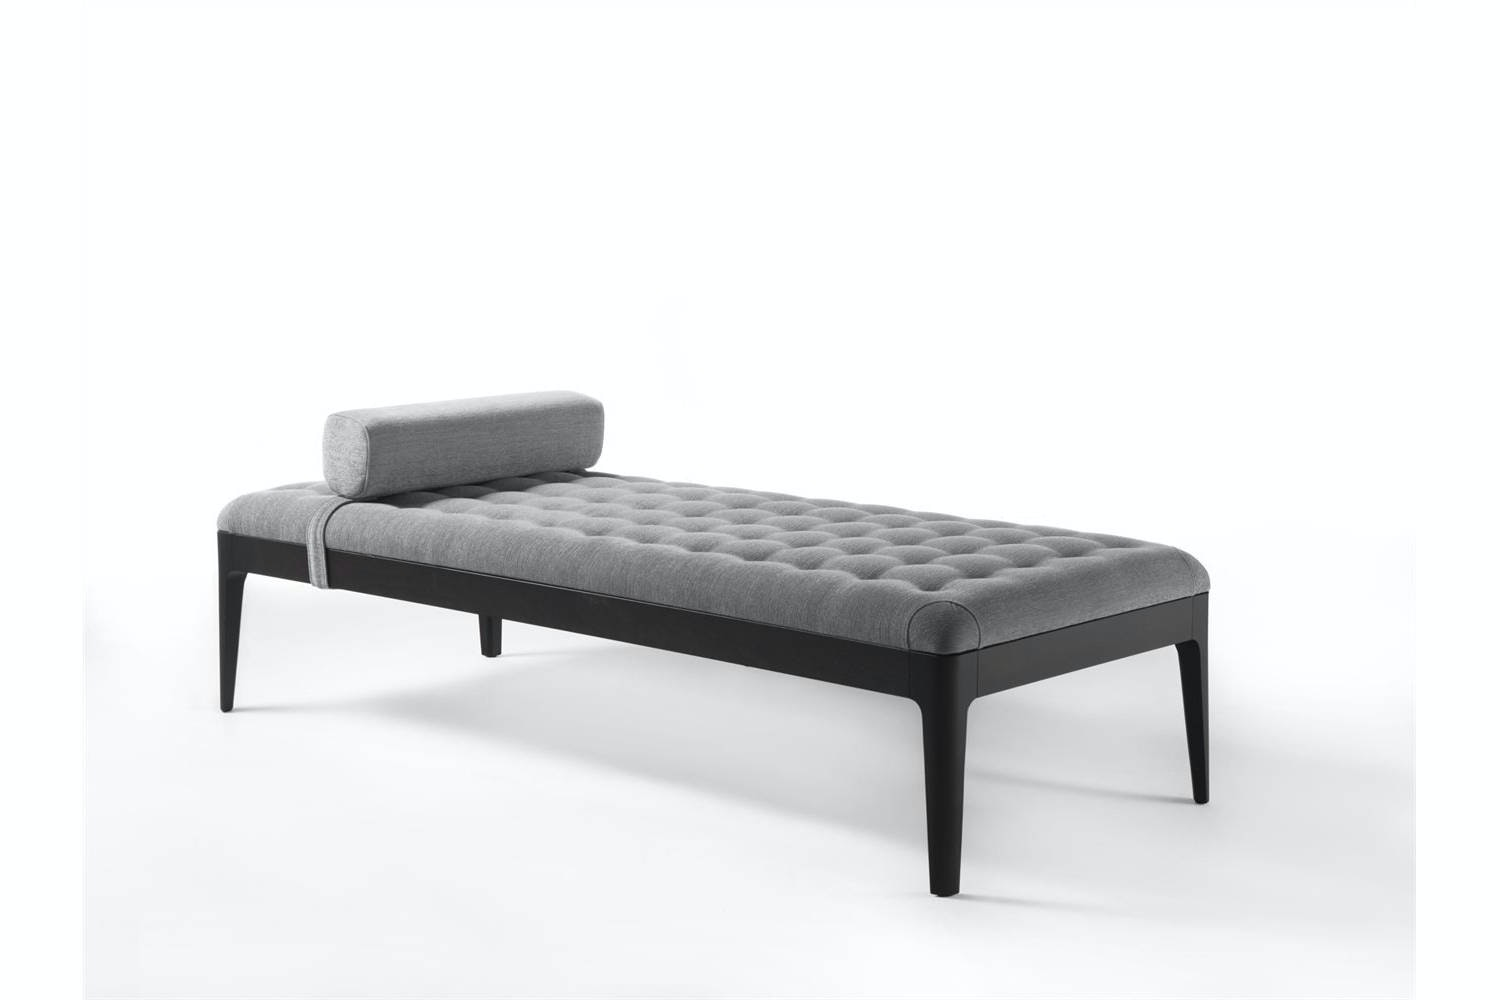 Webby Day Bed by C. Ballabio for Porada